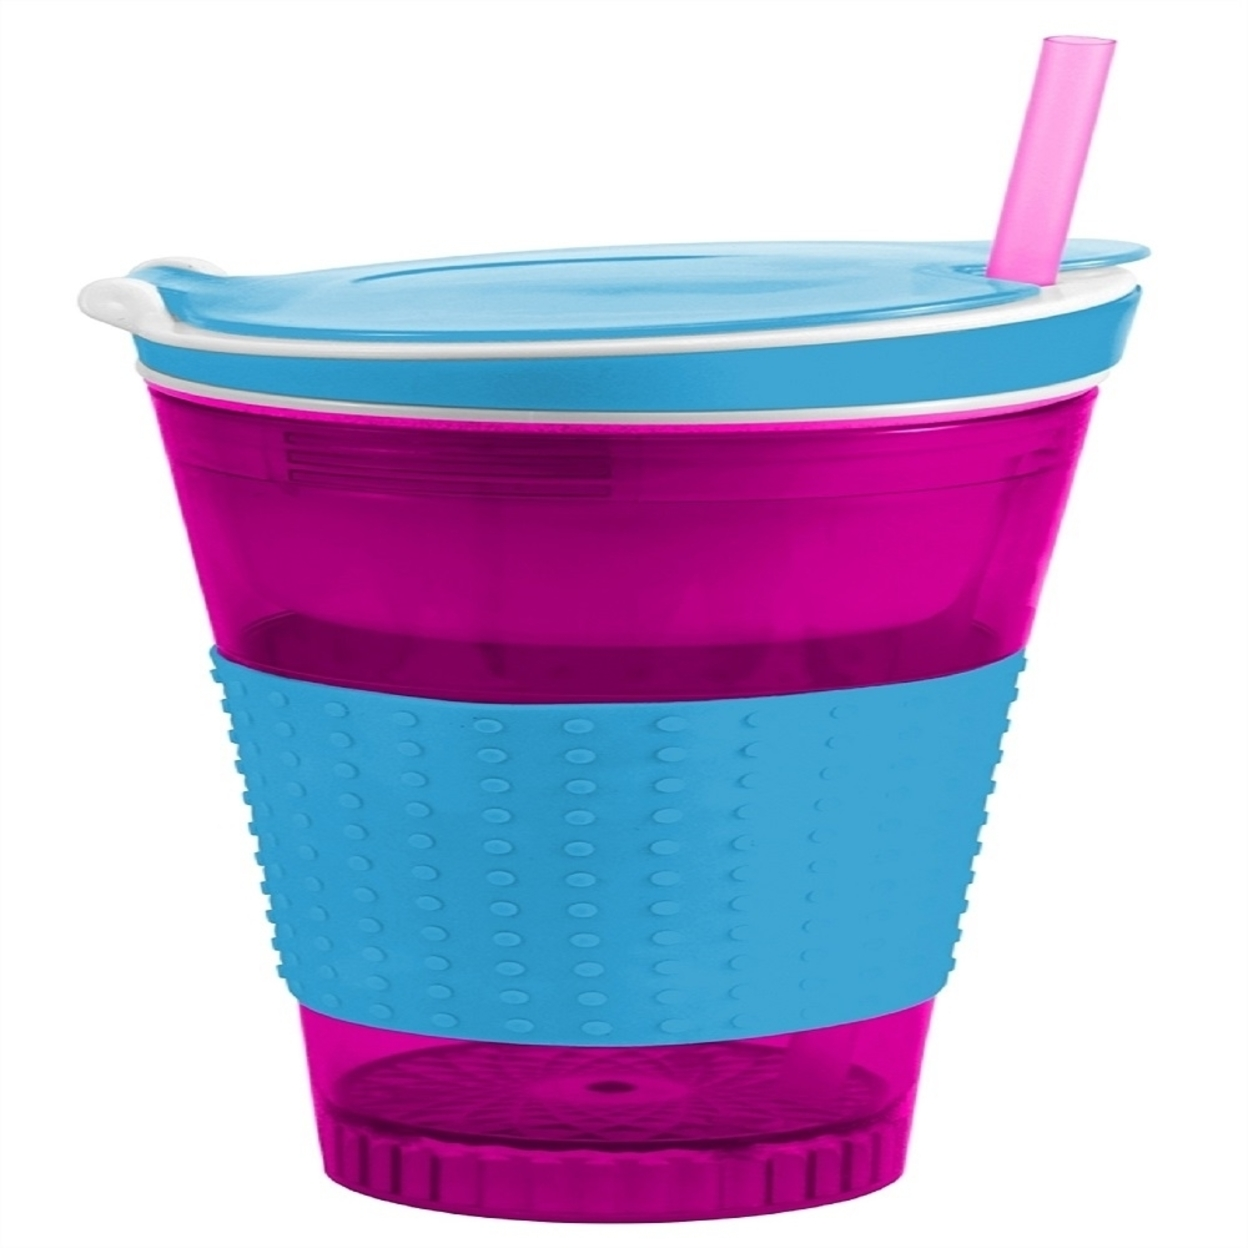 Two Elephants Snackeezer All-In-One Snack & Drink Cup with Lid - Assorted Colors - Pink & Blue 56c371d76f3d6fc6208b4ace